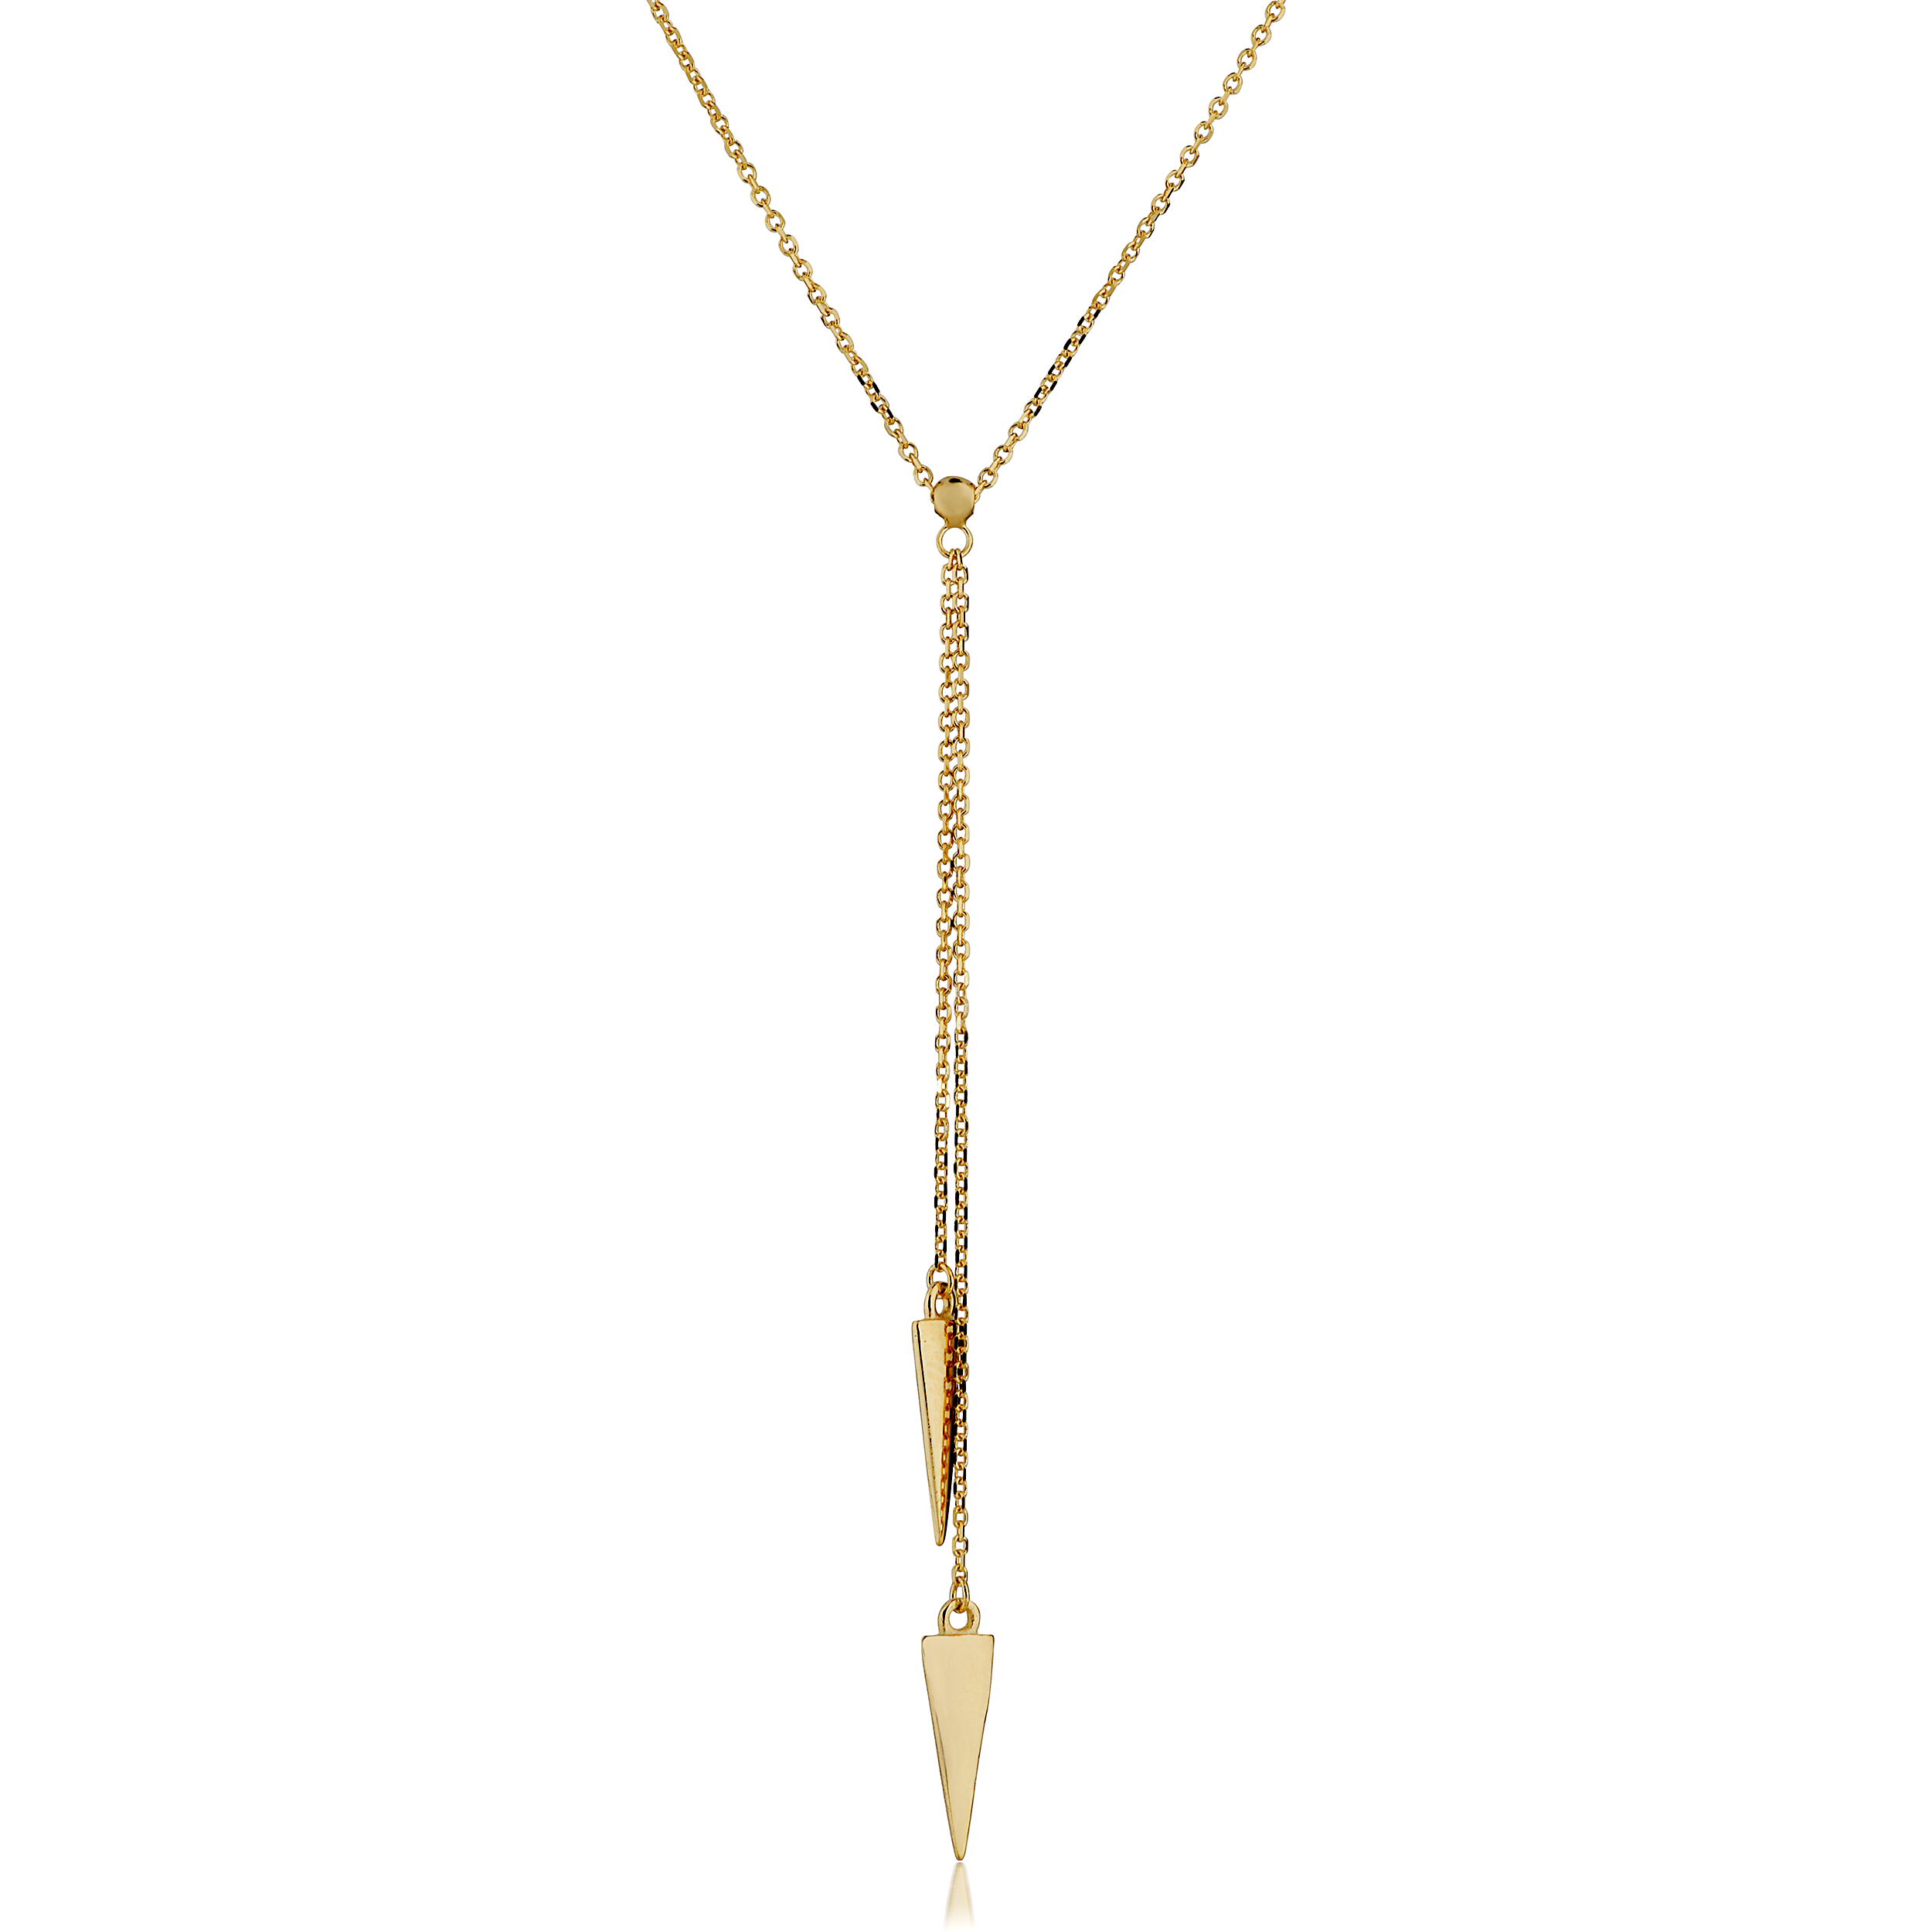 14K Yellow Gold Double Triangle Lariat Necklace, 17